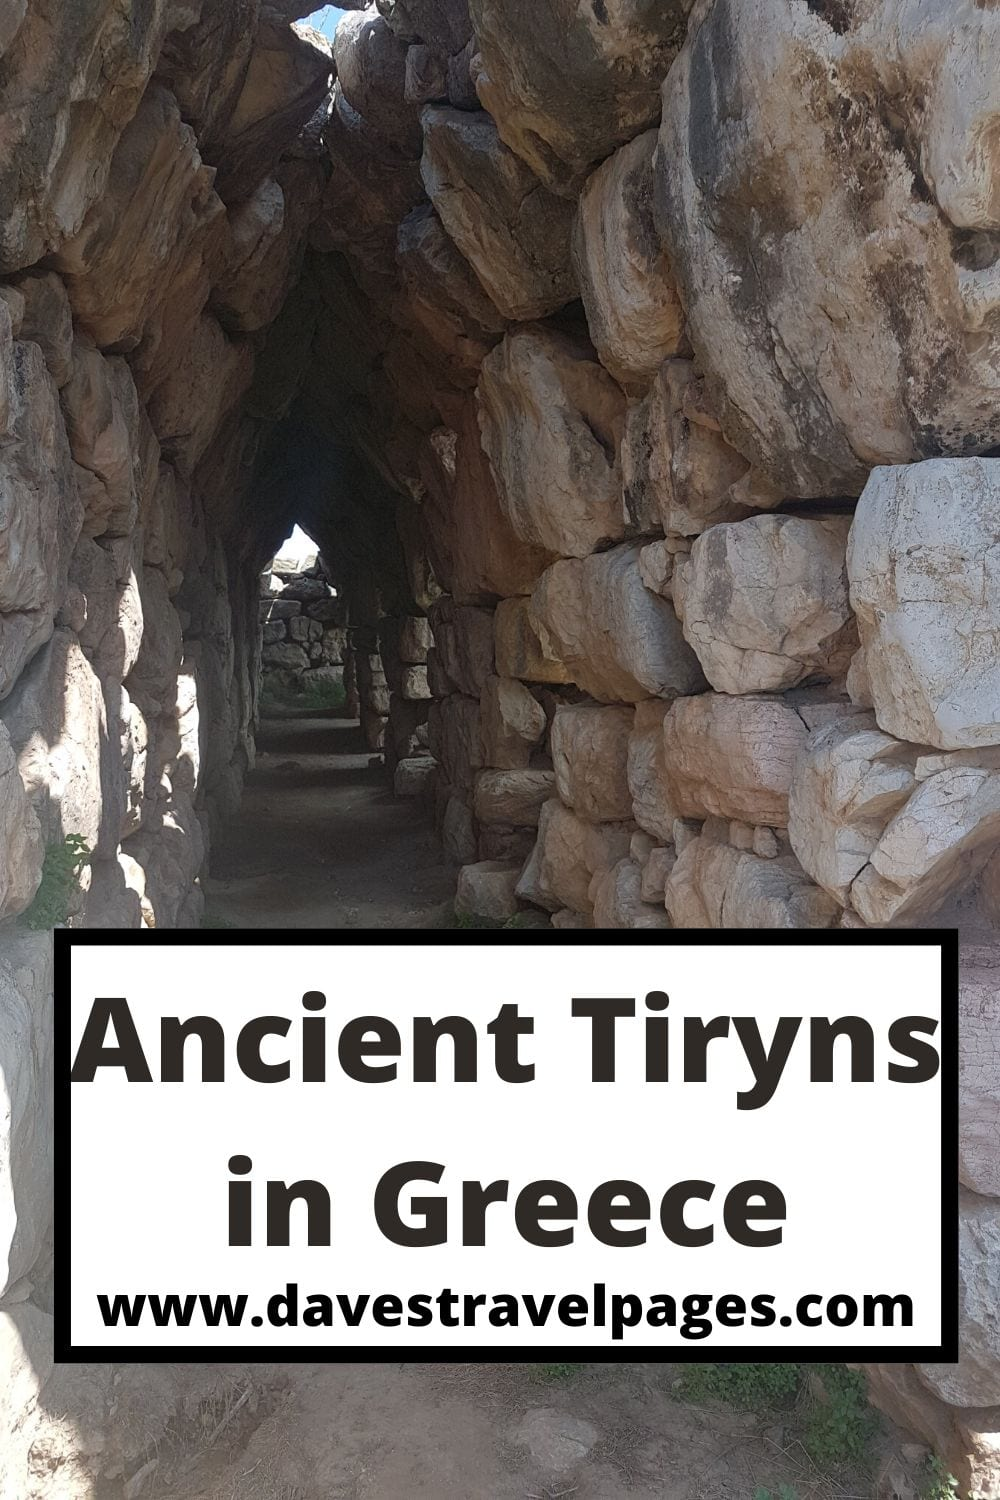 Visiting Ancient Tiryns in Greece